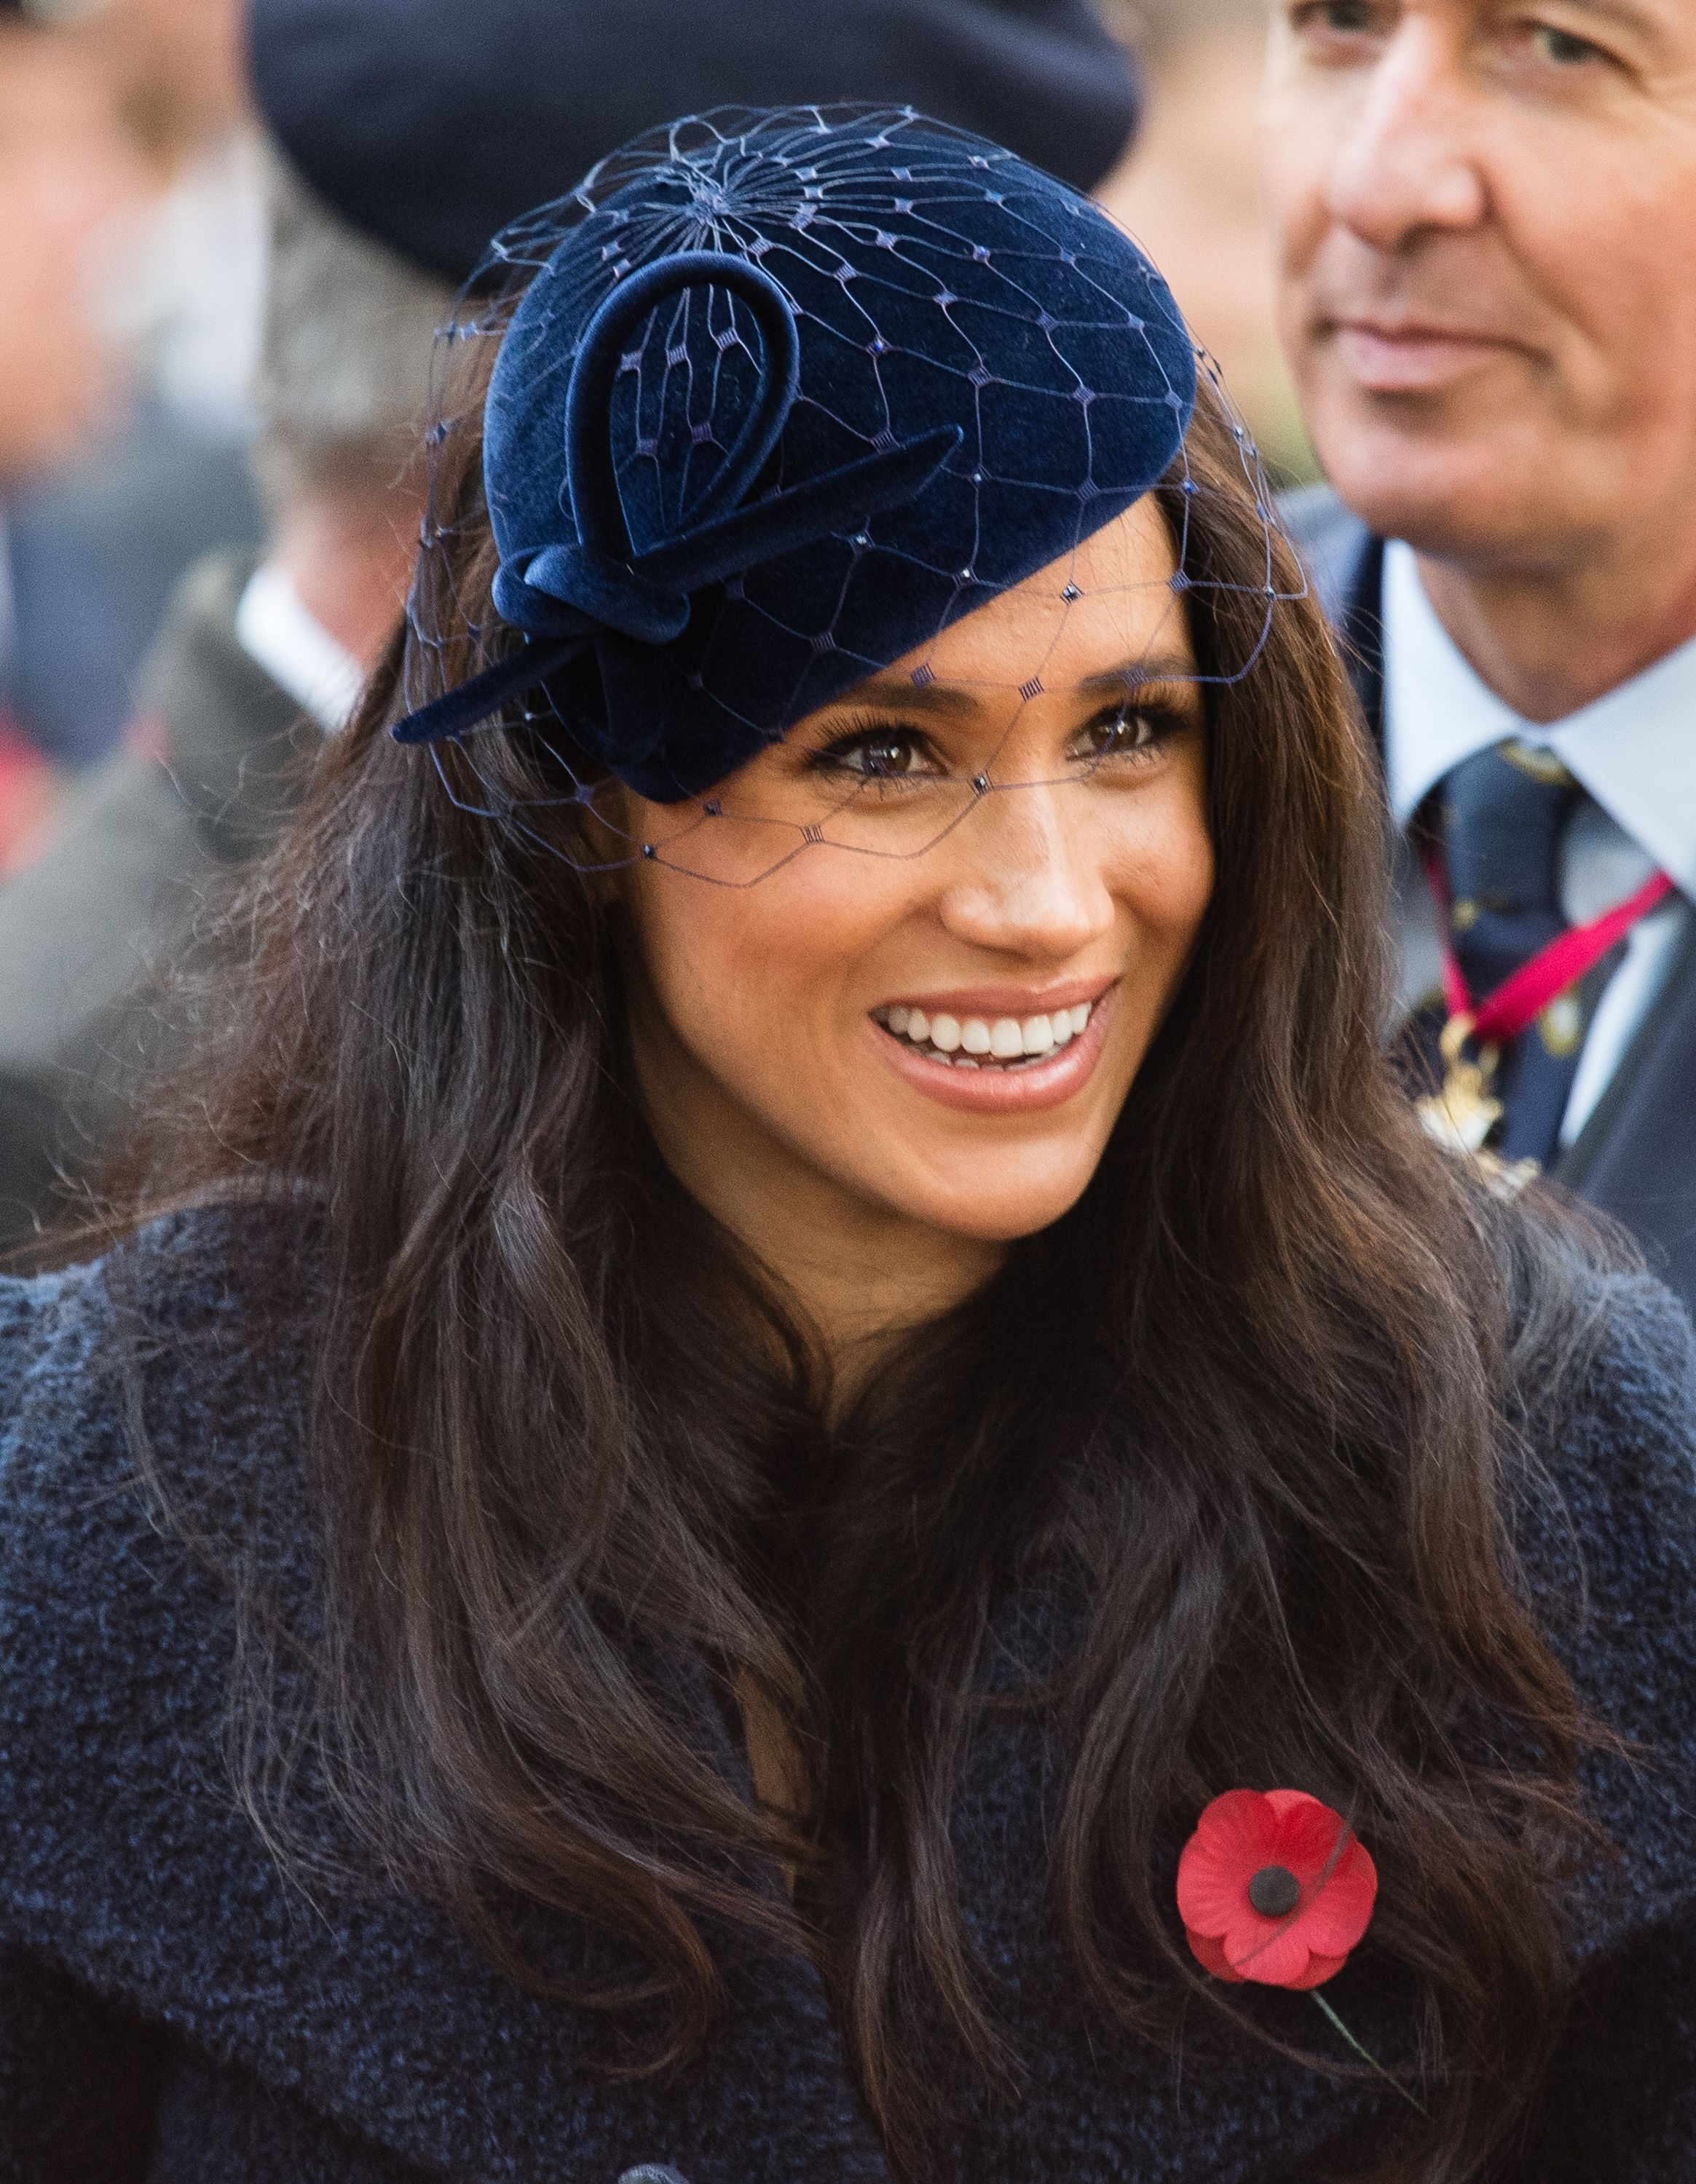 How a veteran reacted when Meghan Markle smudged makeup on his coat